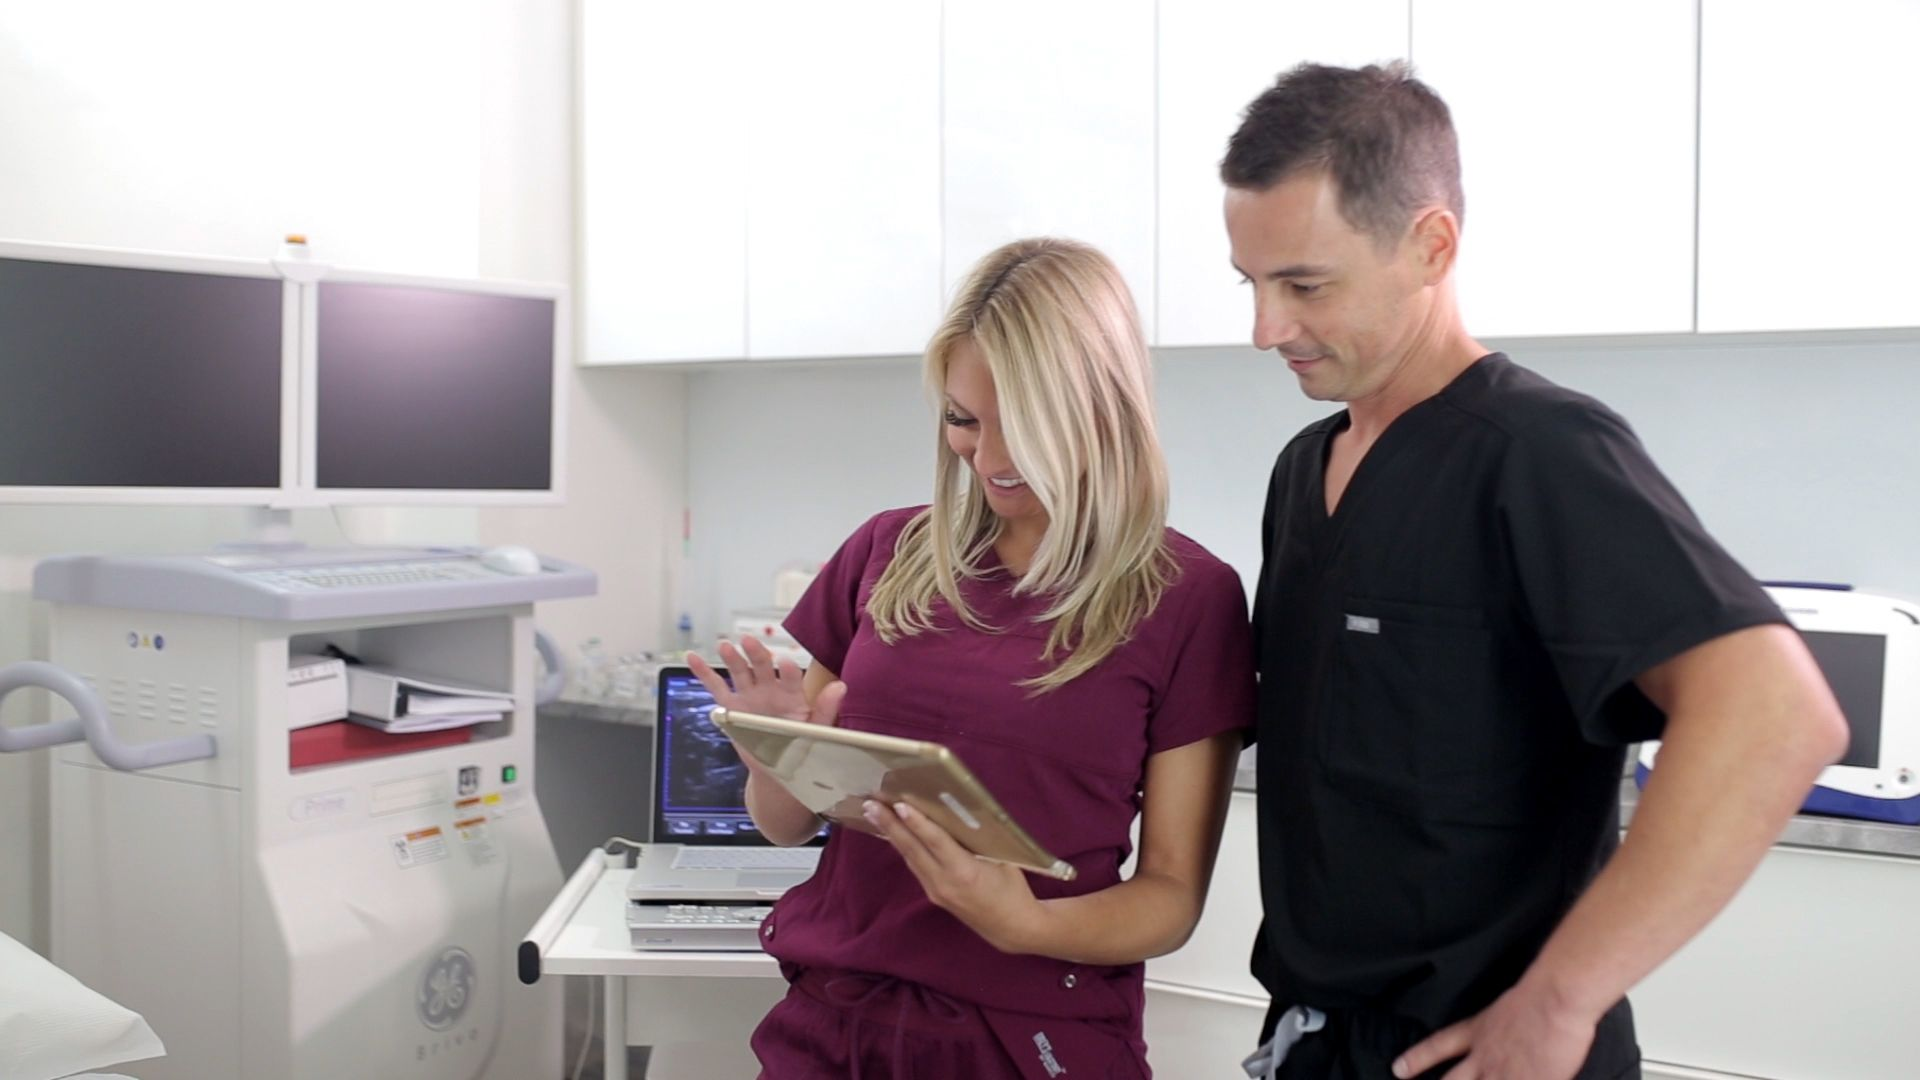 Dr. Schoenfeld consulting with MA - Vein Treatment Clinic